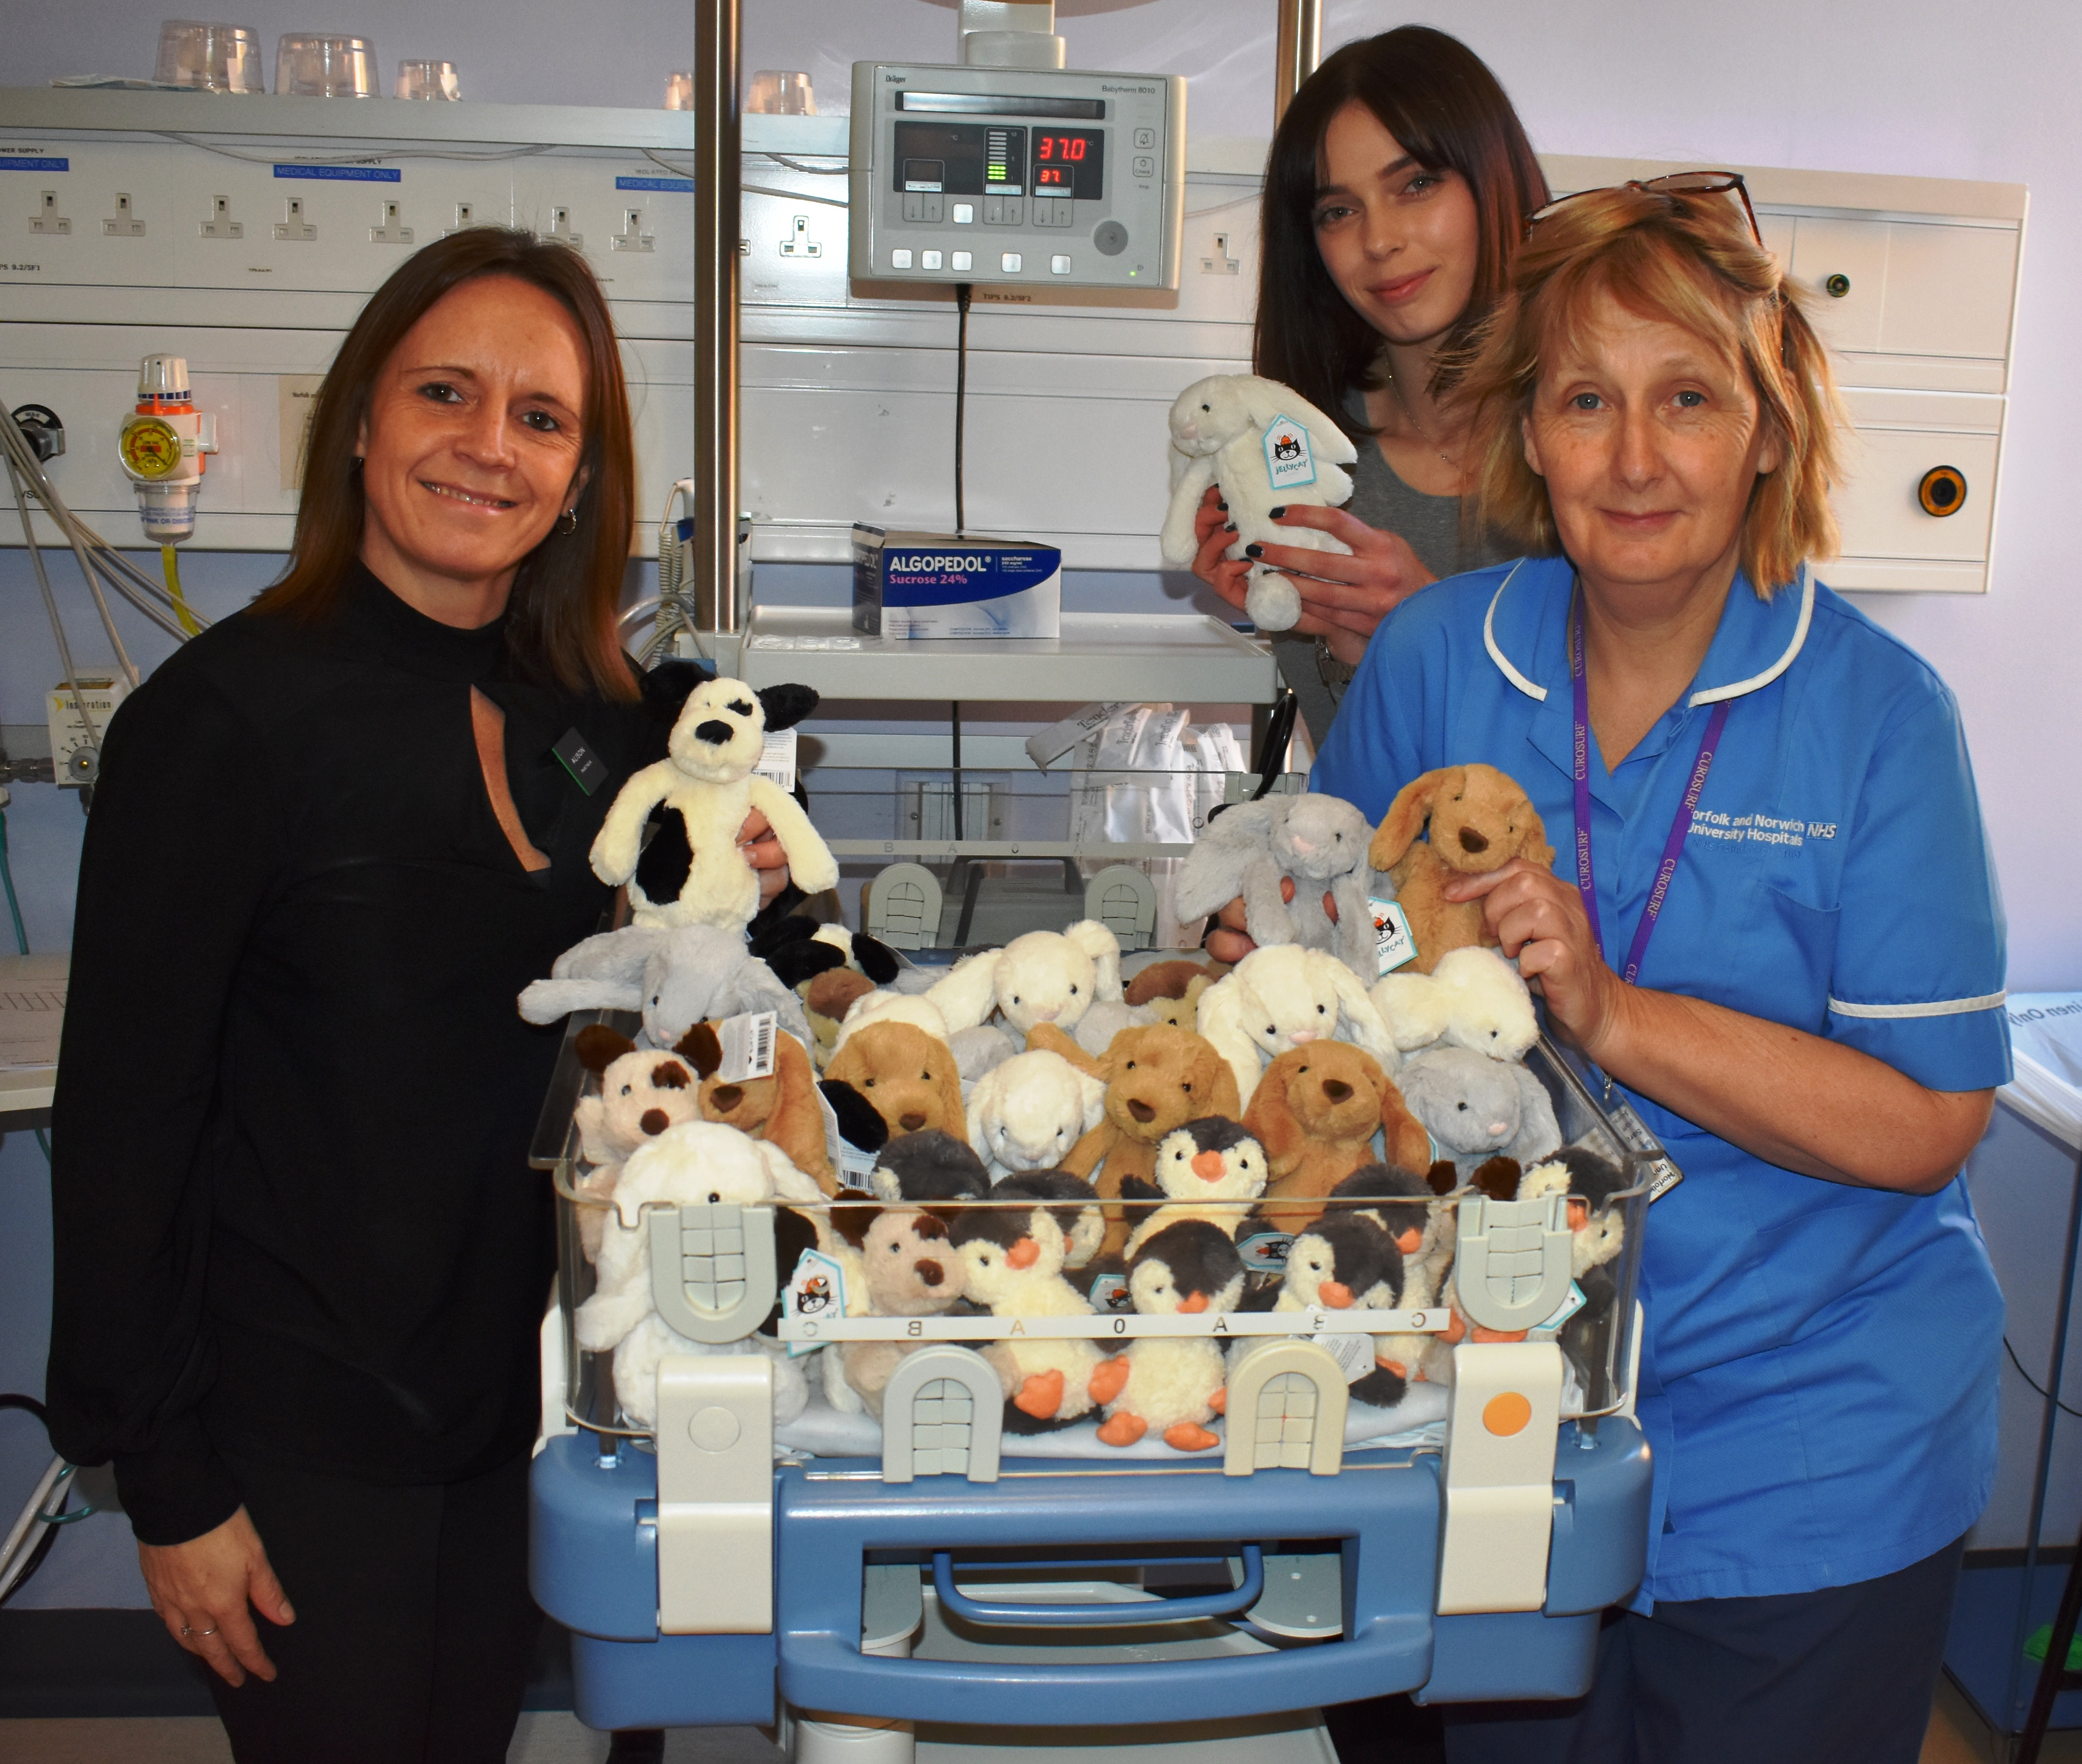 John Lewis staff make special delivery to NICU